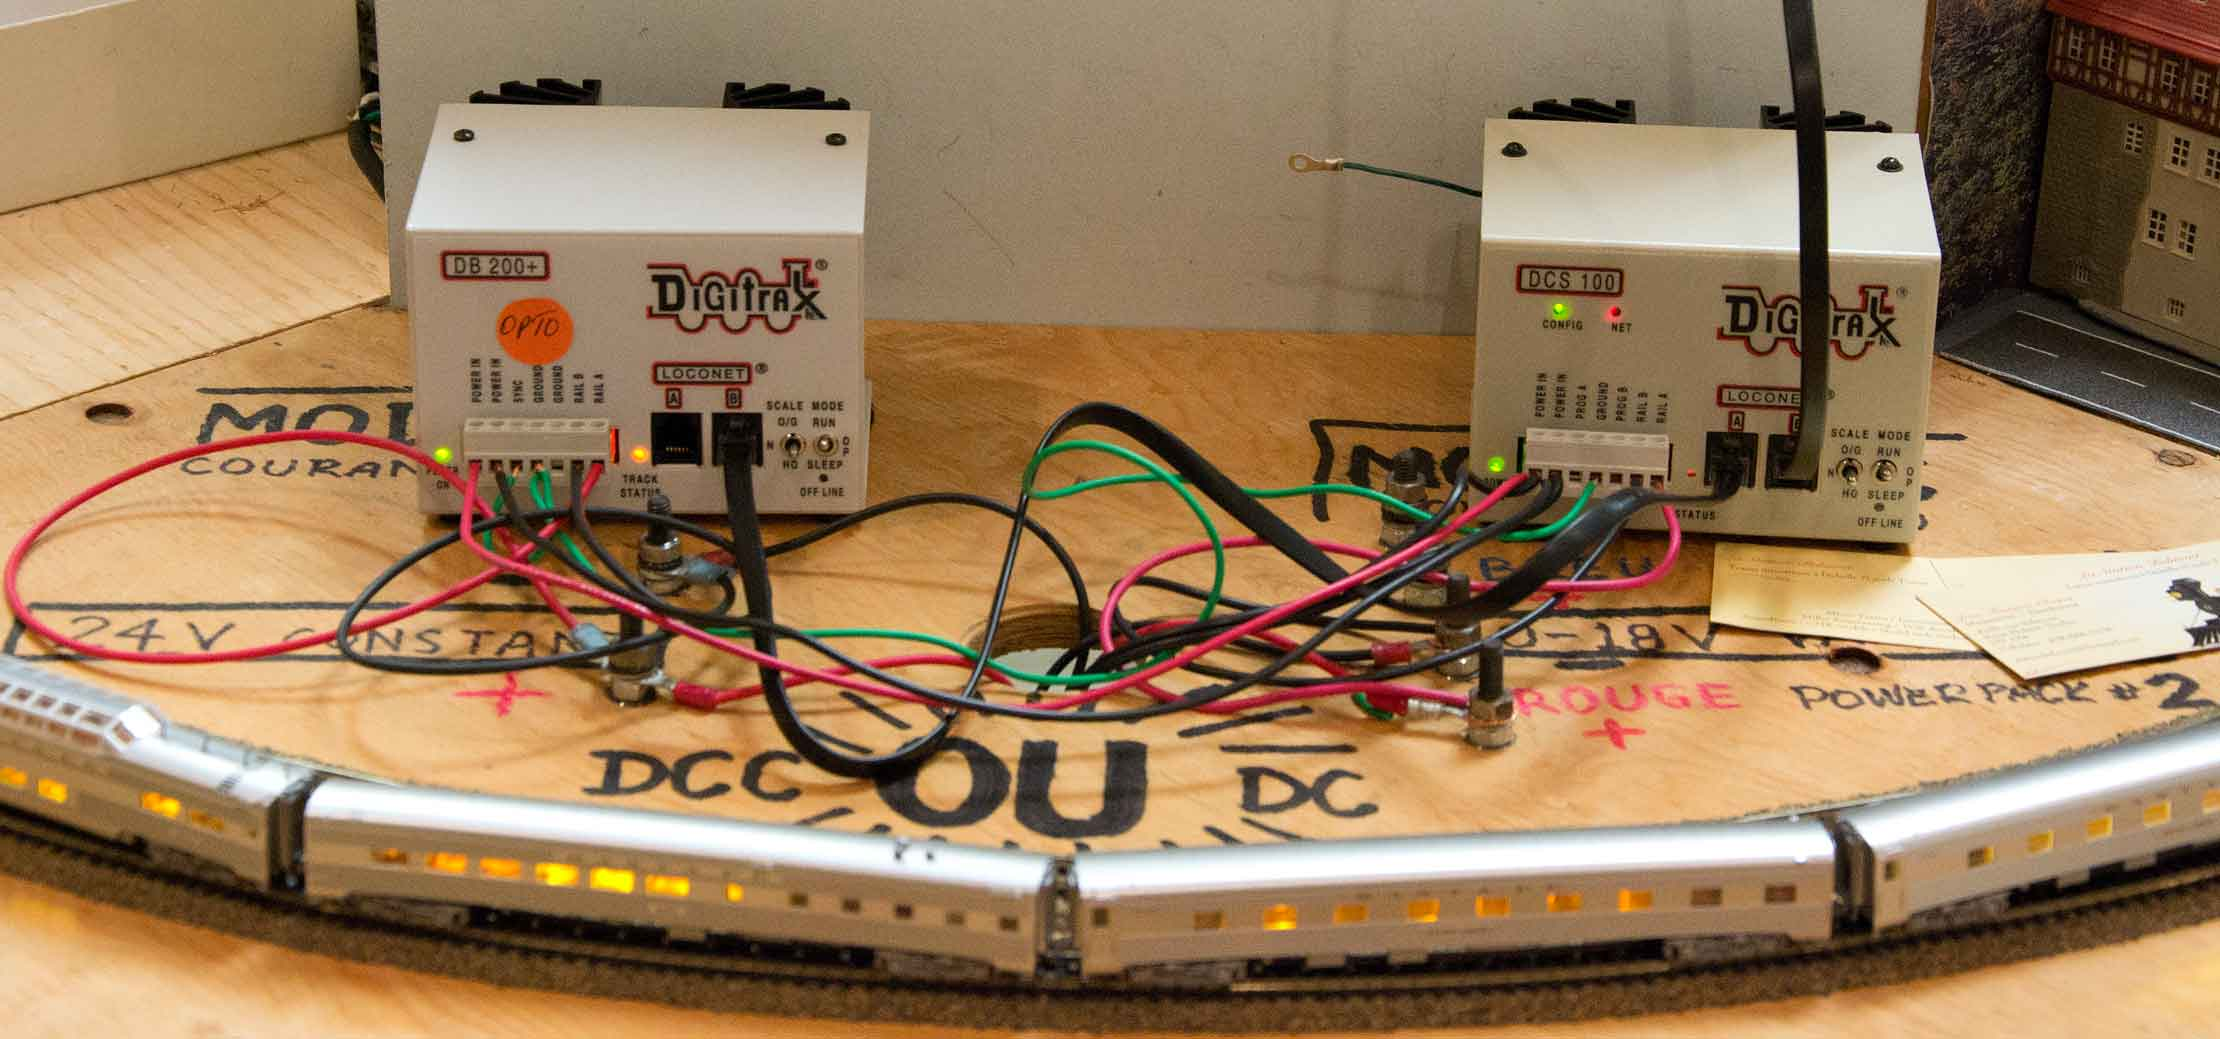 Boosters for DCC send data and power to trains. on